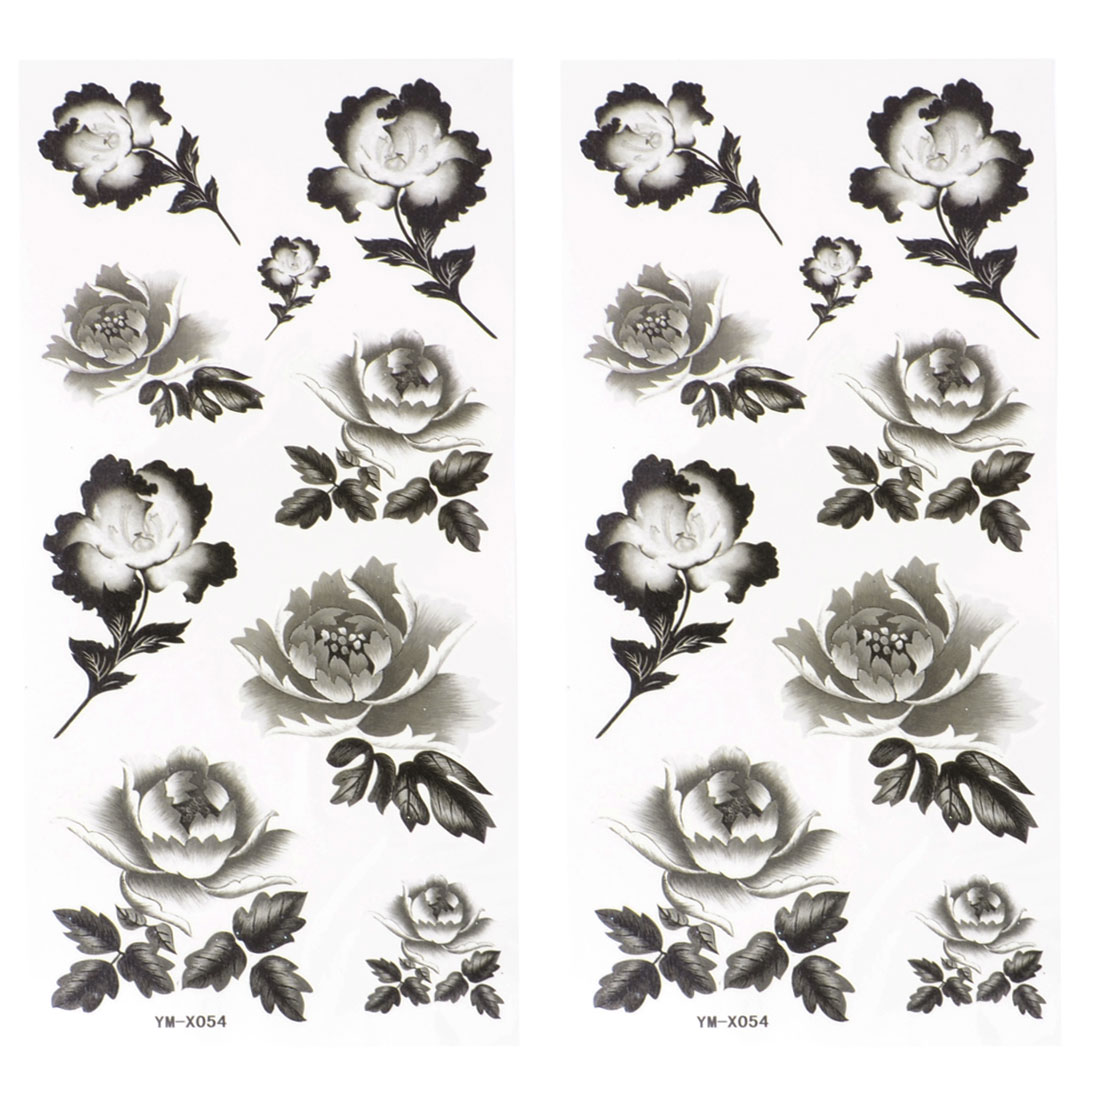 Black Peony Flower Print Temporary Tattoo Transfer Sticker Decoration 2 Pcs